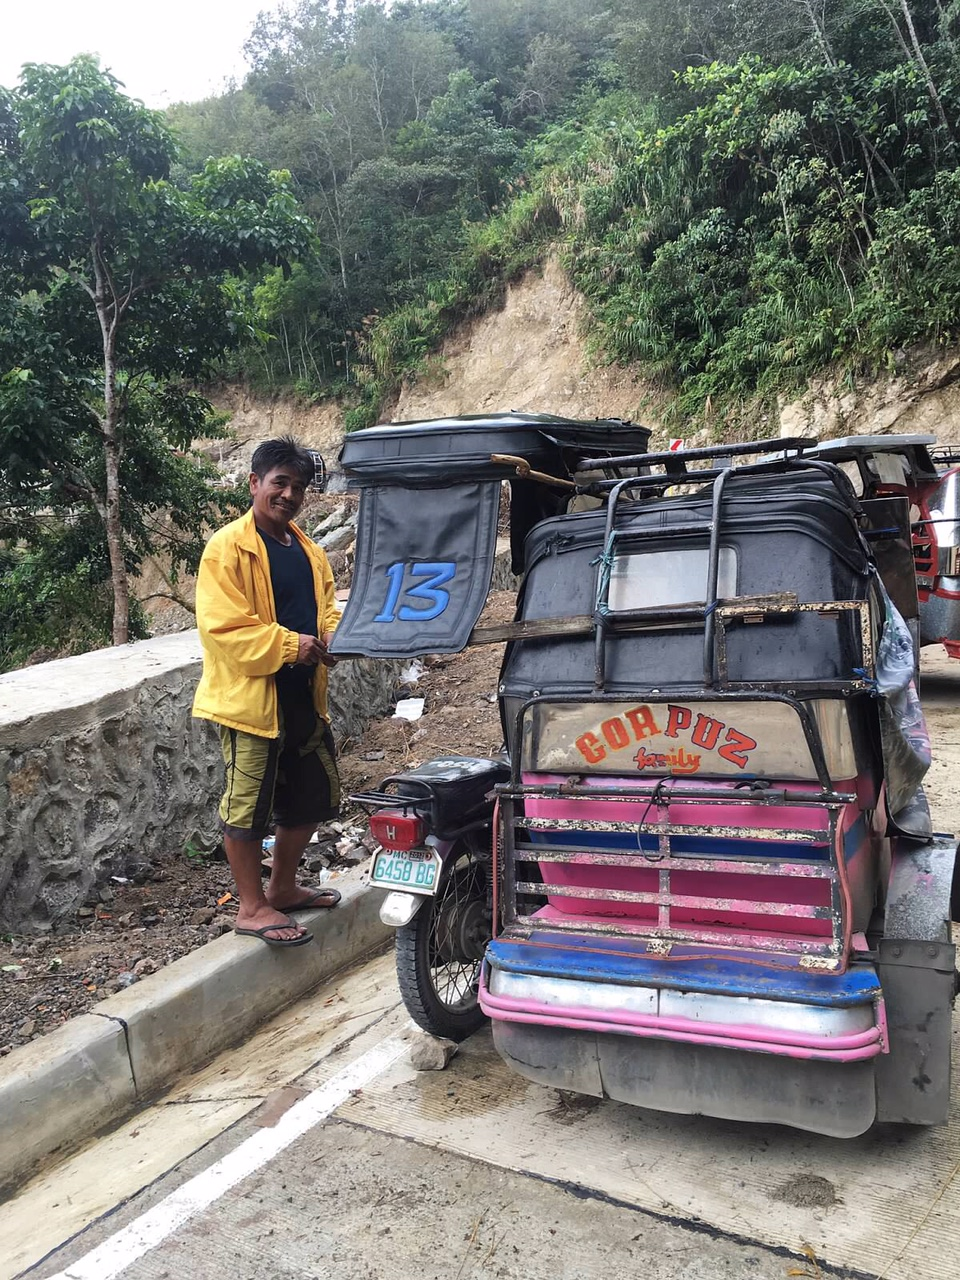 My guide & transport to batad terraces